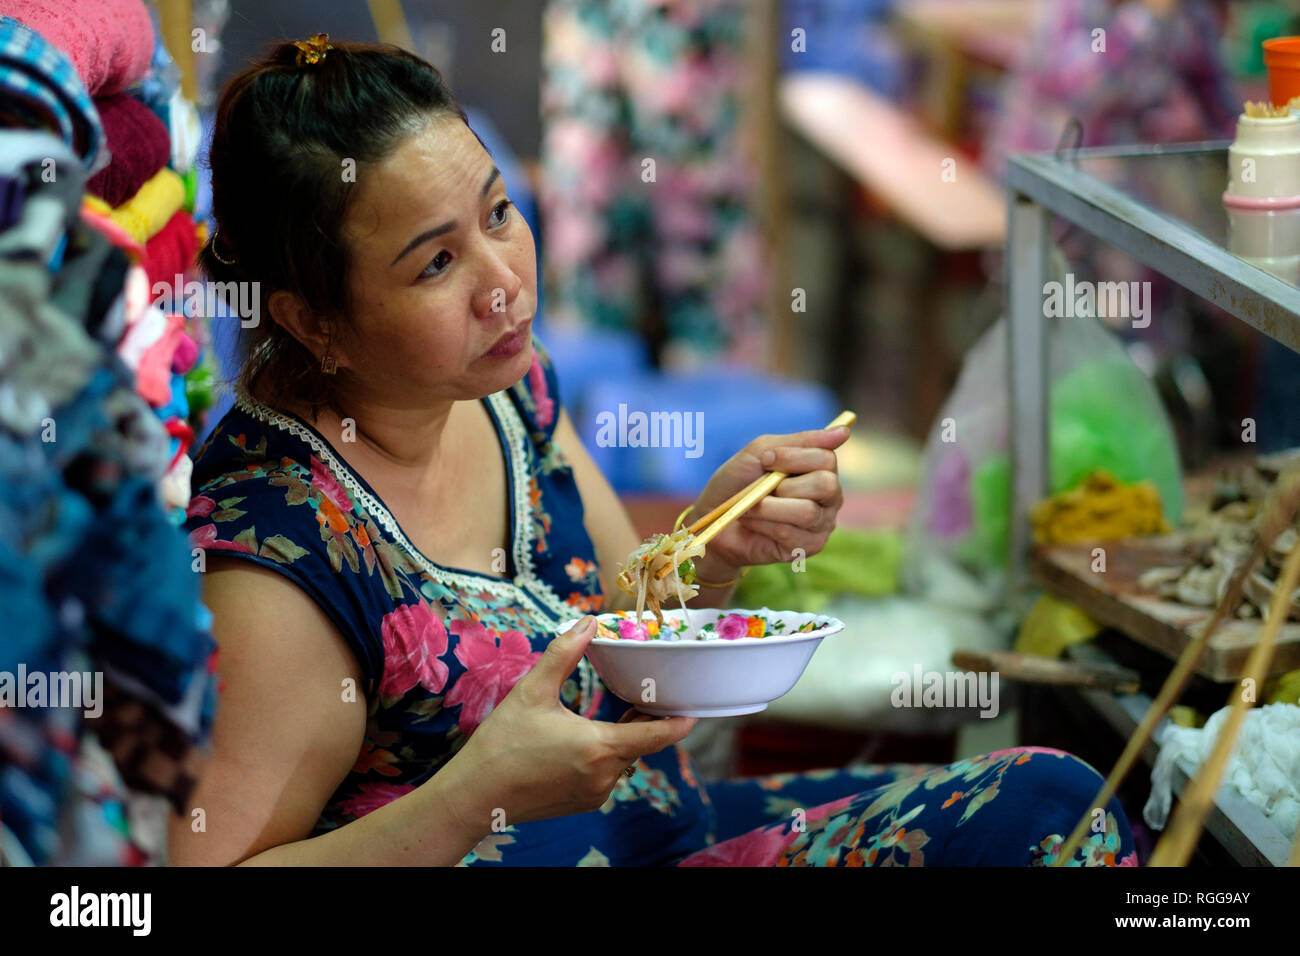 Woman eating street food with chopsticks at Dong Ba market in Hue, Vietnam, Asia - Stock Image